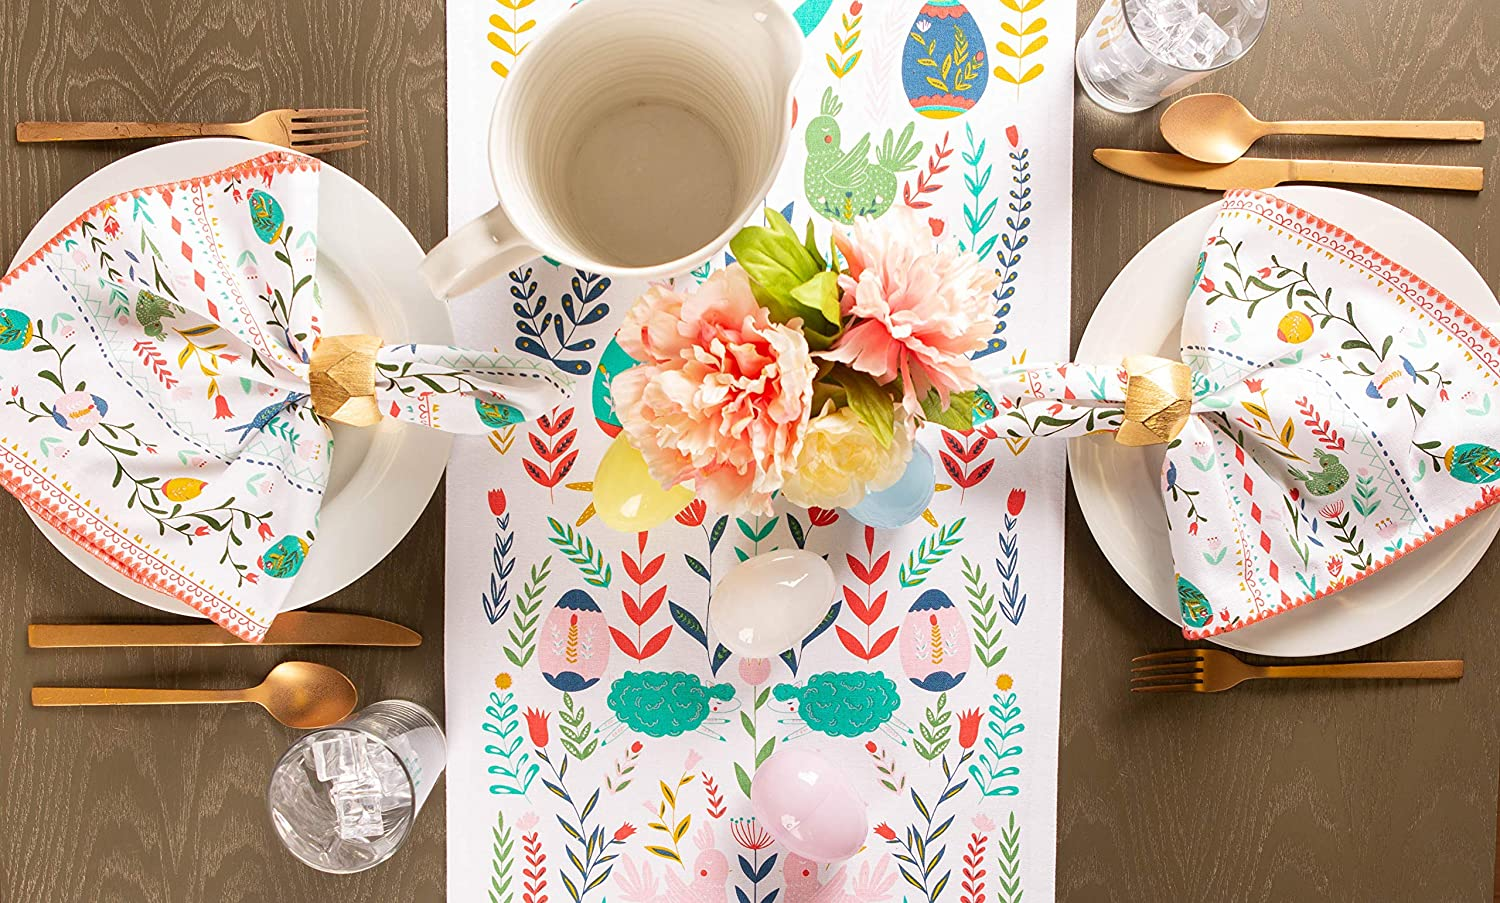 Cotton Table Runner with Tassels for Easter 14x72